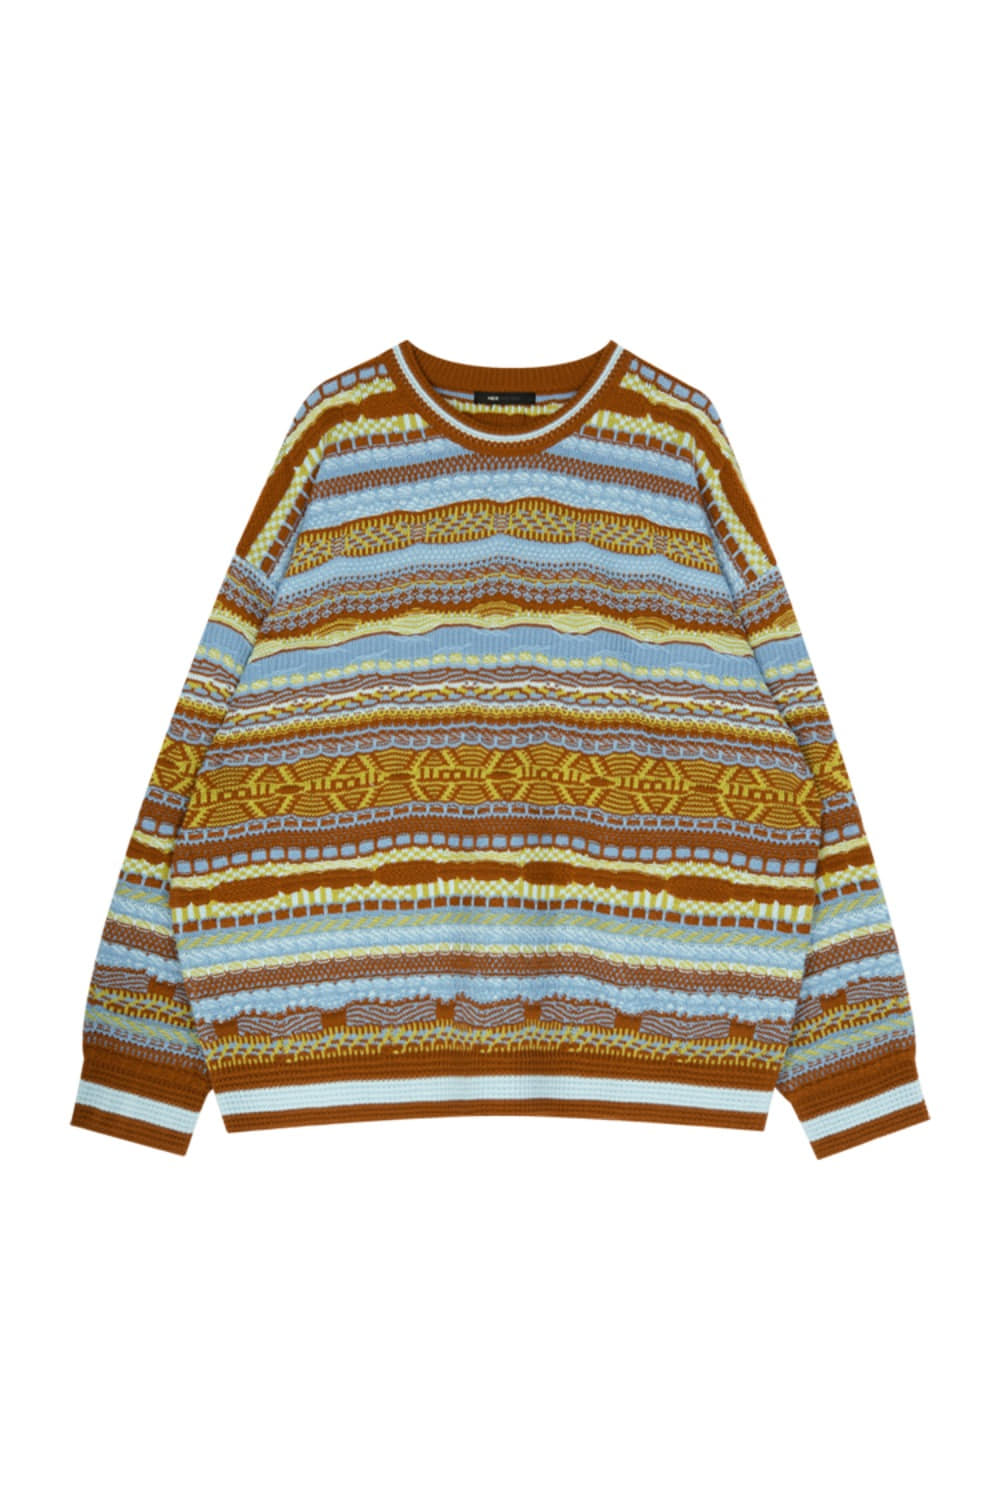 HIDE Geometric Knit BROWN